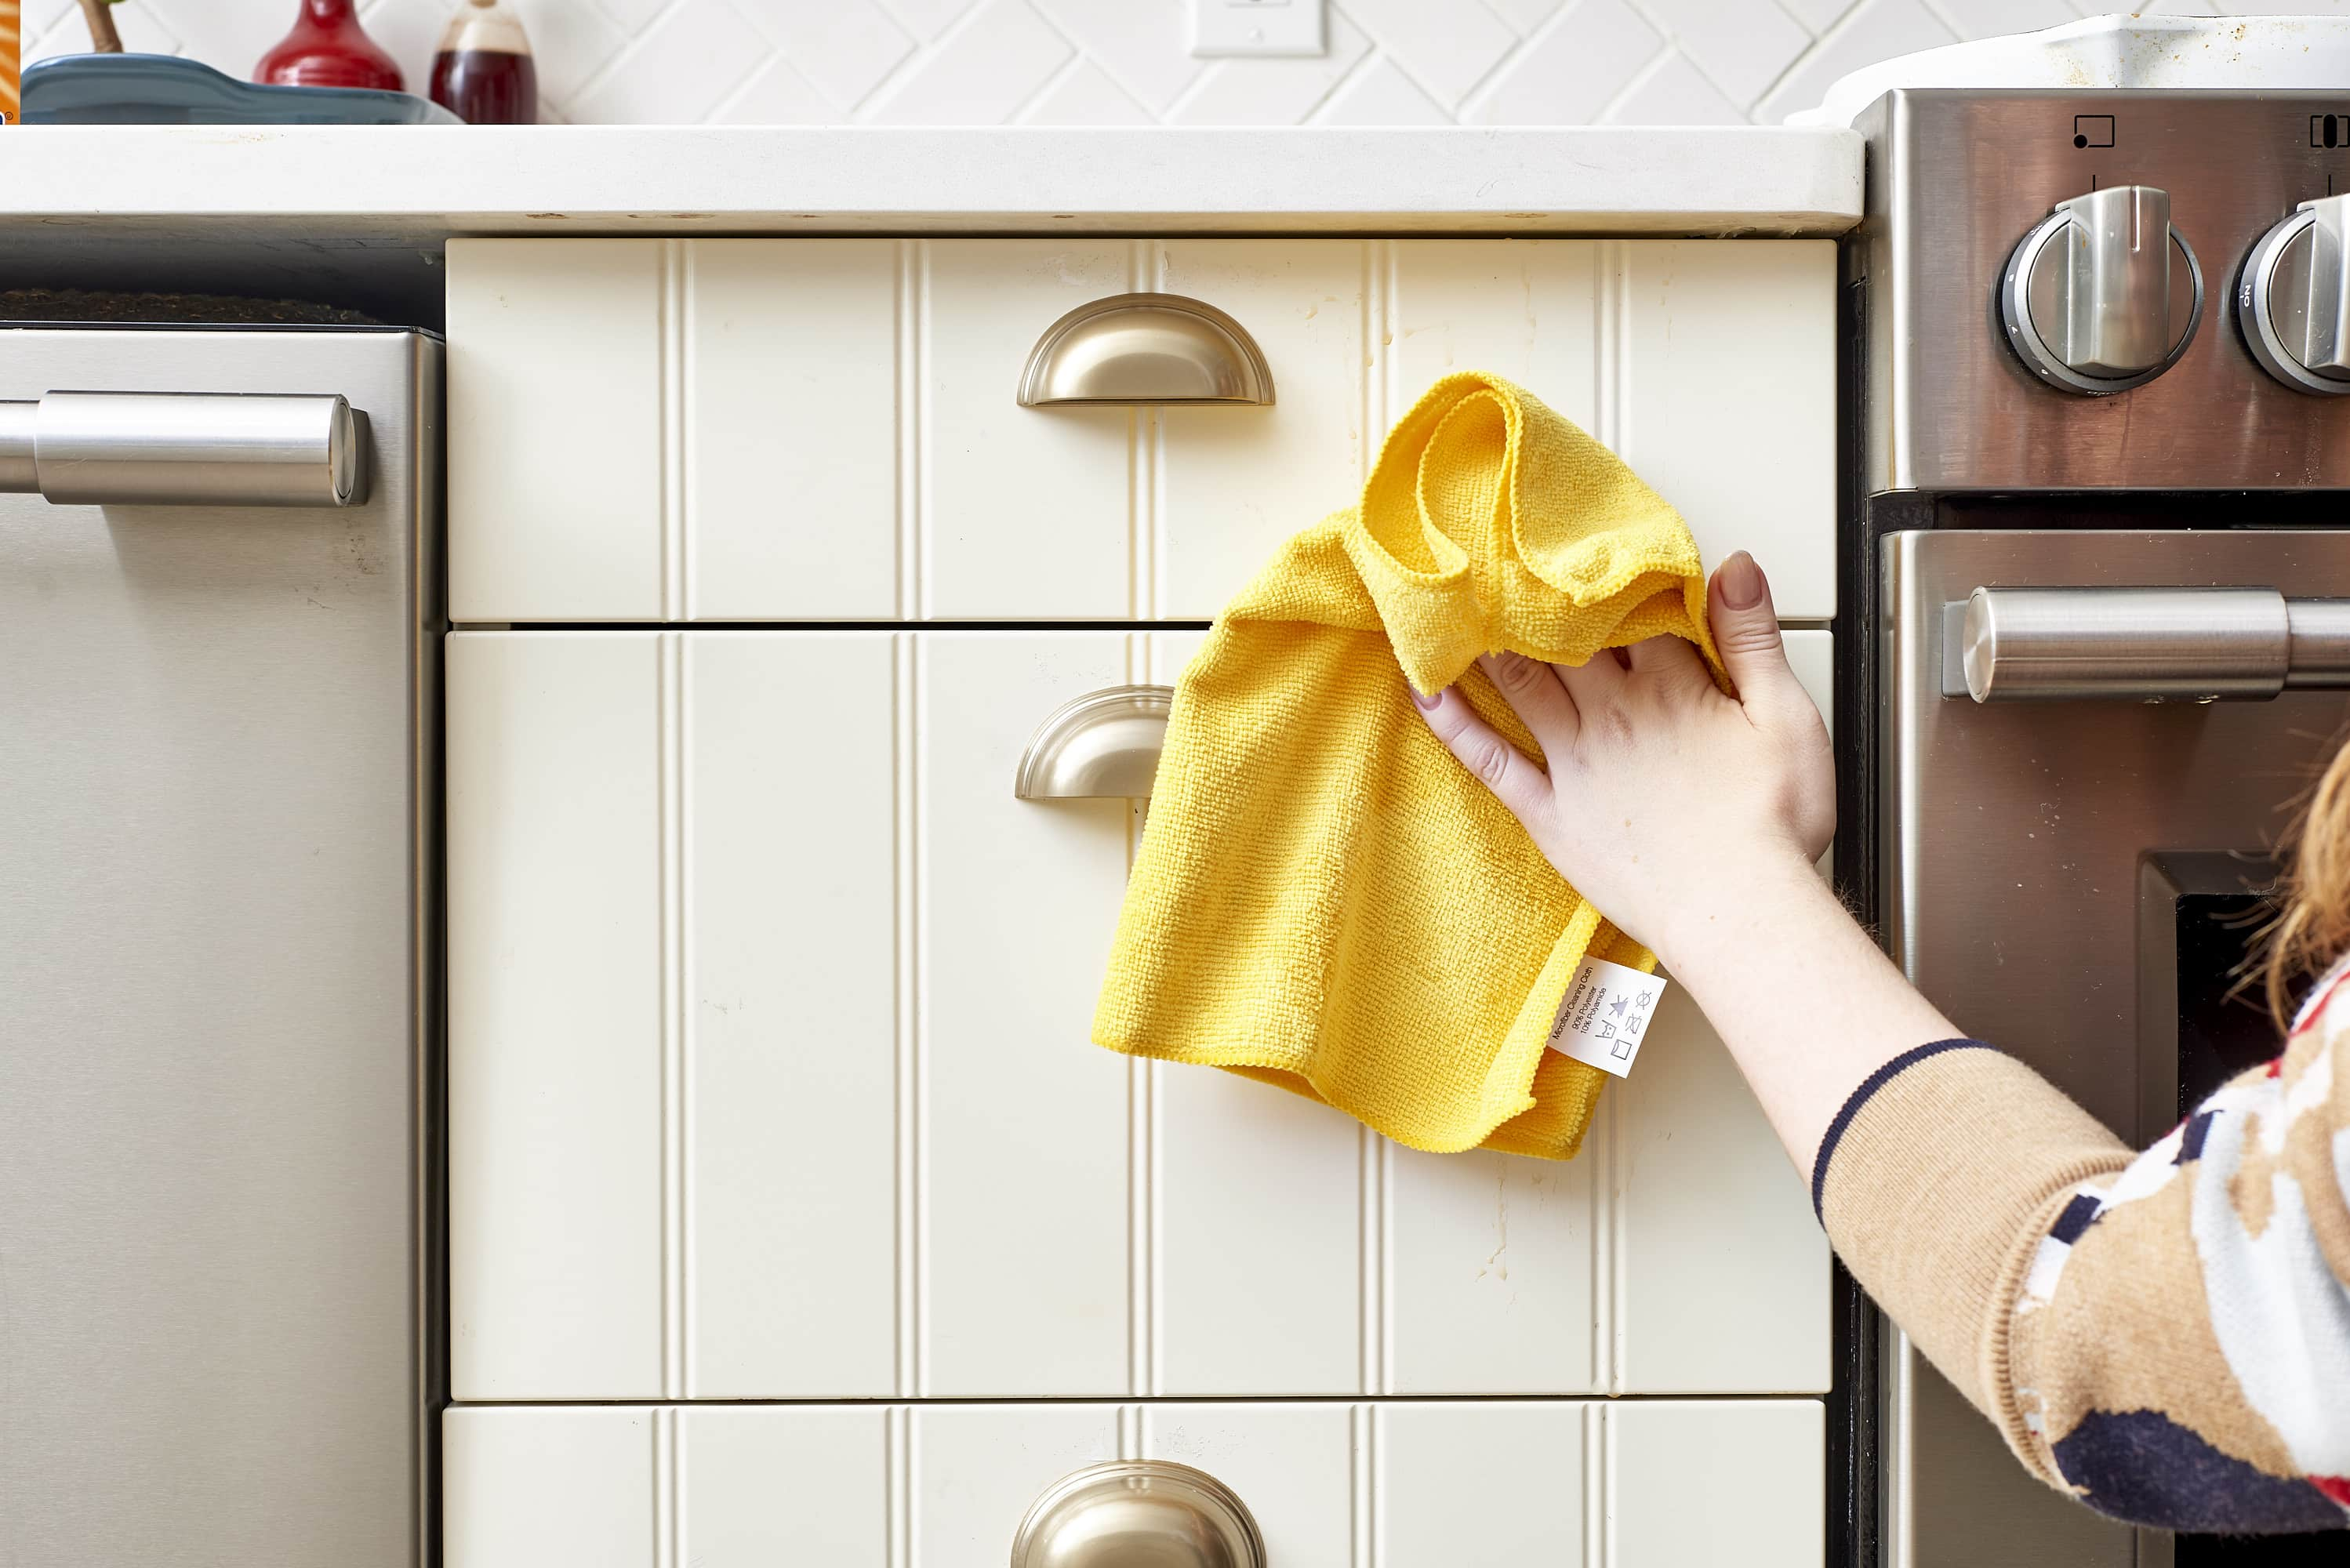 How To Get Sticky Cooking Grease Off Cabinet Doors Kitchn